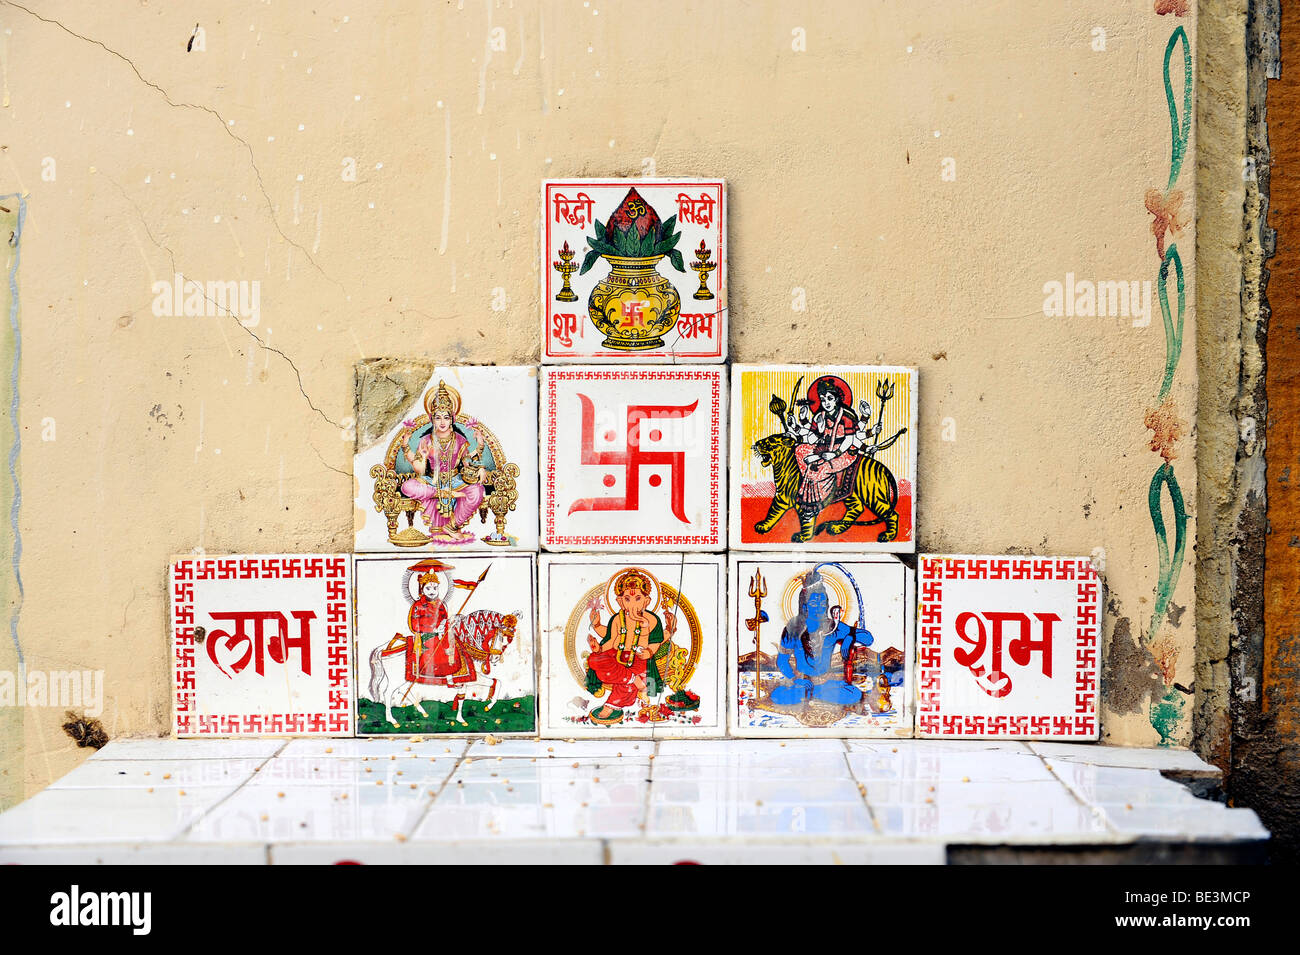 Tiles with Indian, Hindu deities and the Swastika for good luck, Sunrise icon, Jaisalmer, Rajasthan, North India, - Stock Image